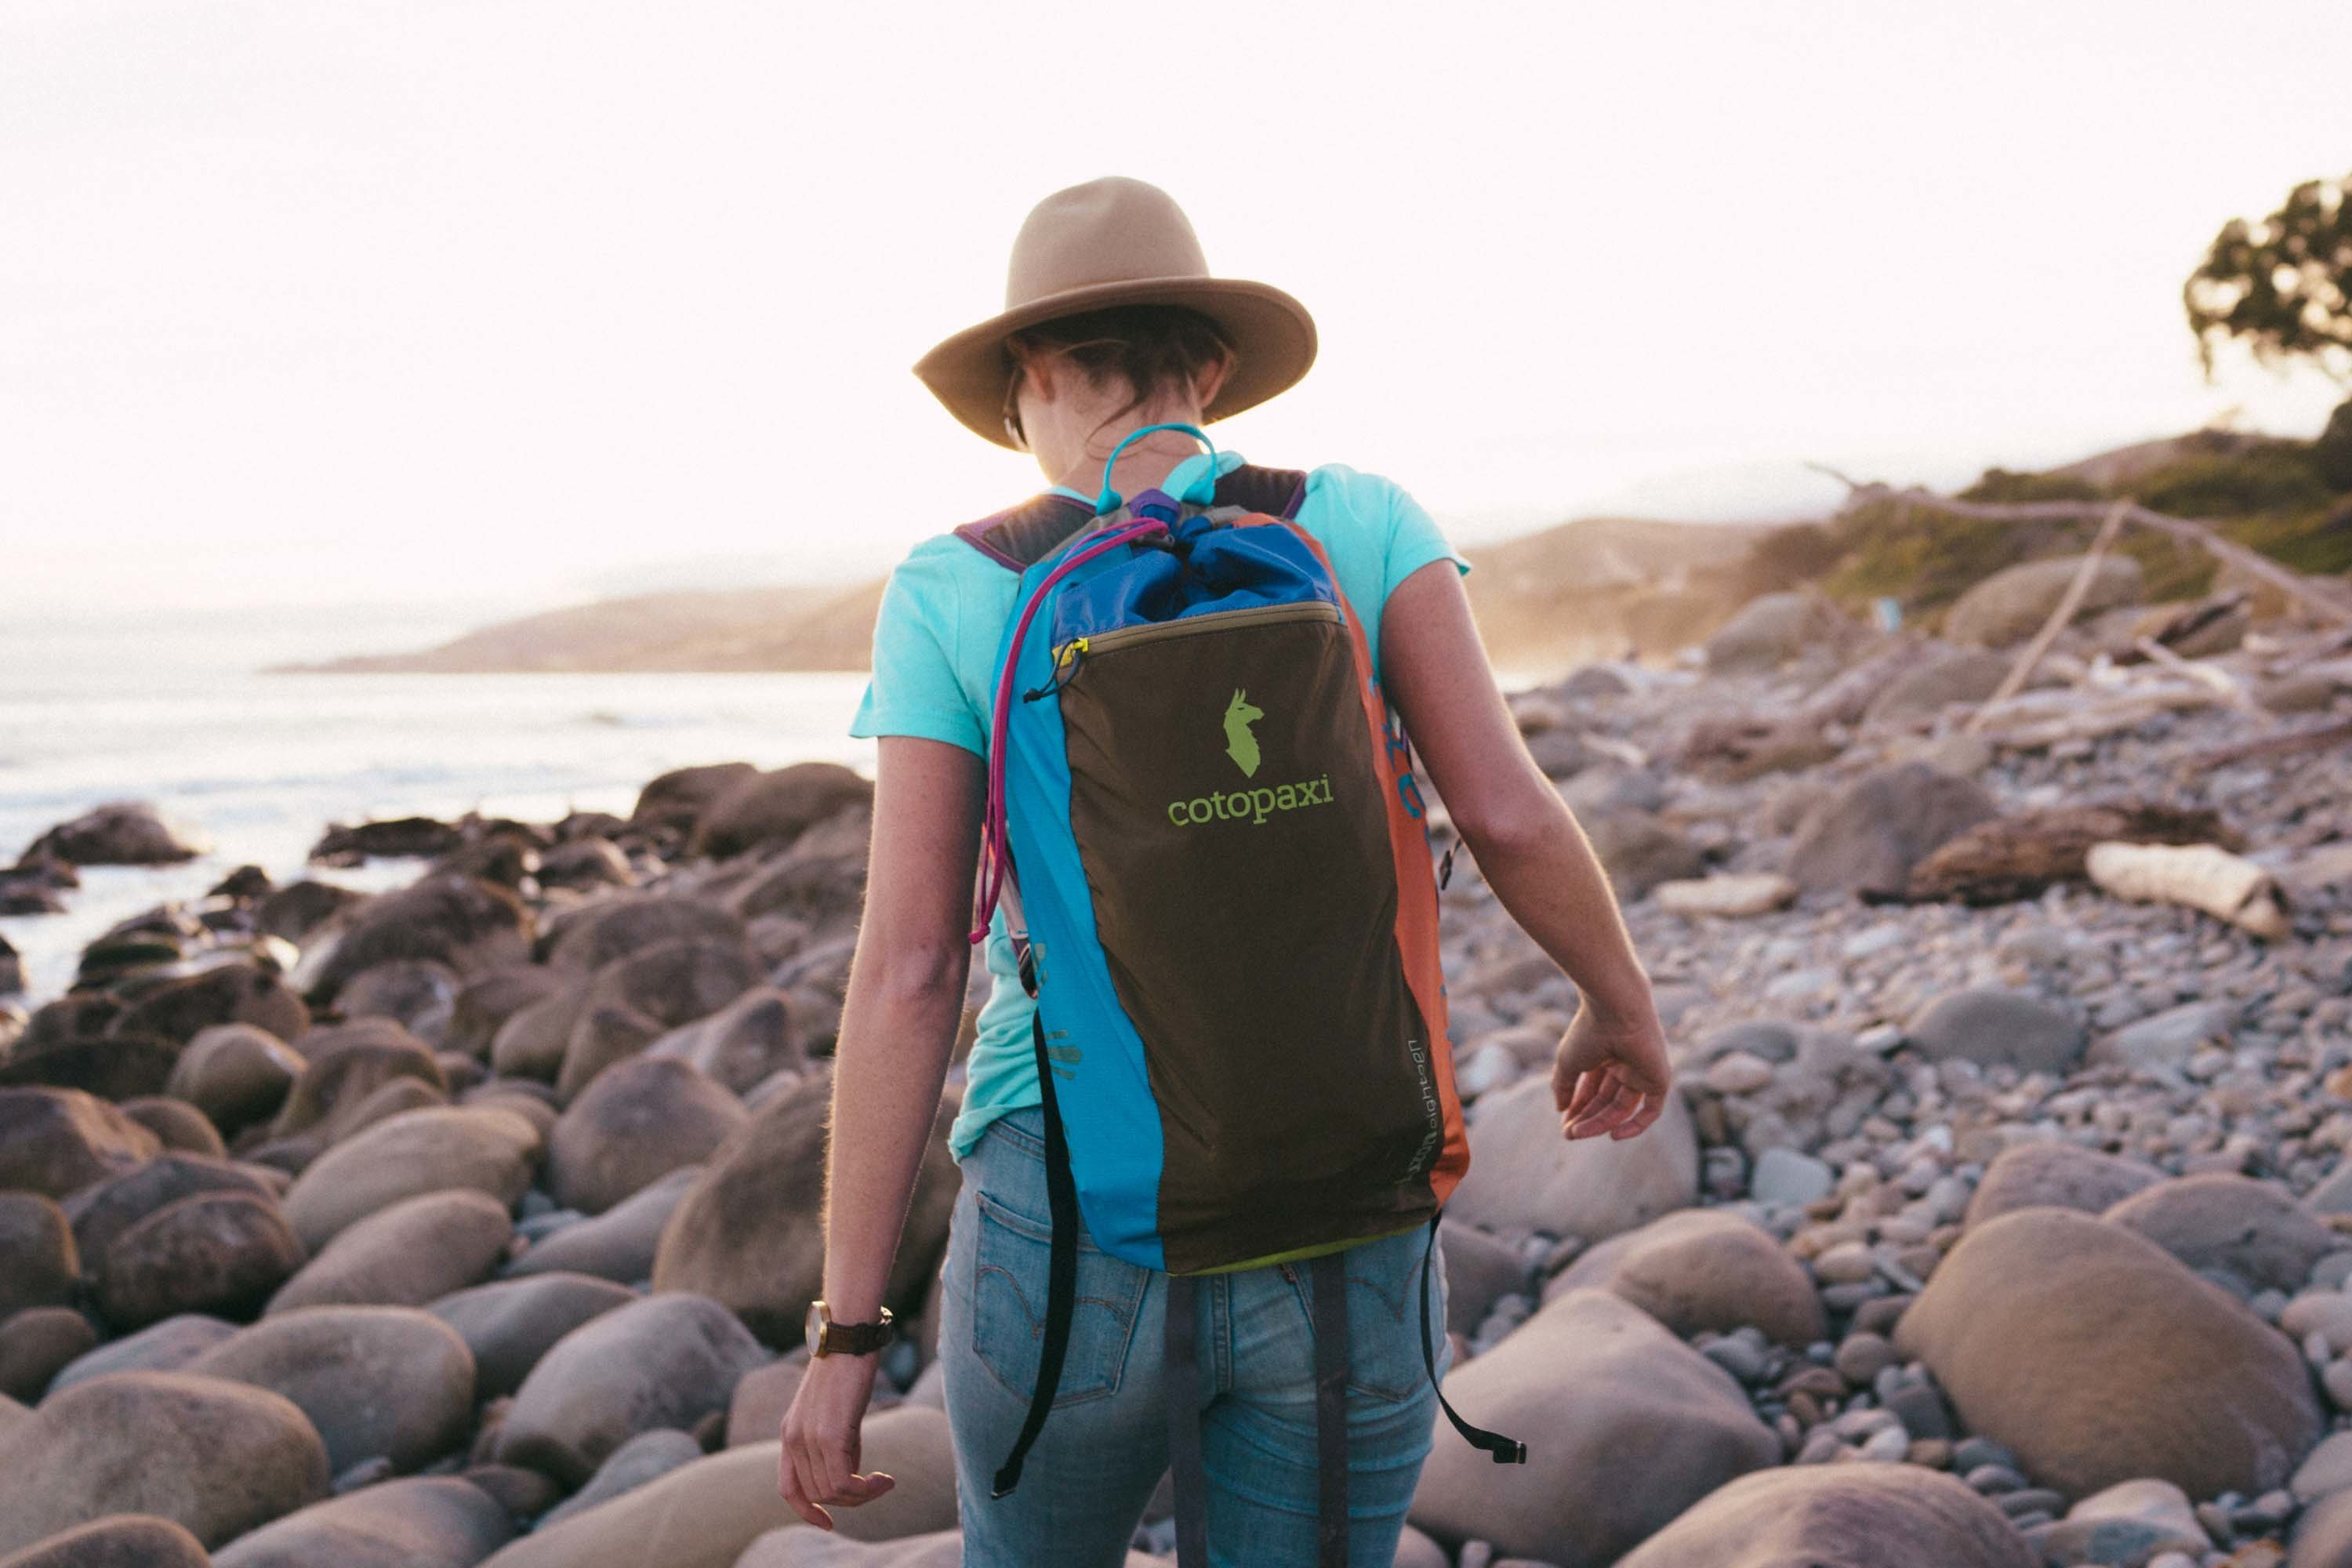 Cotopaxi Luzon Del Dia sustainable holiday gifts